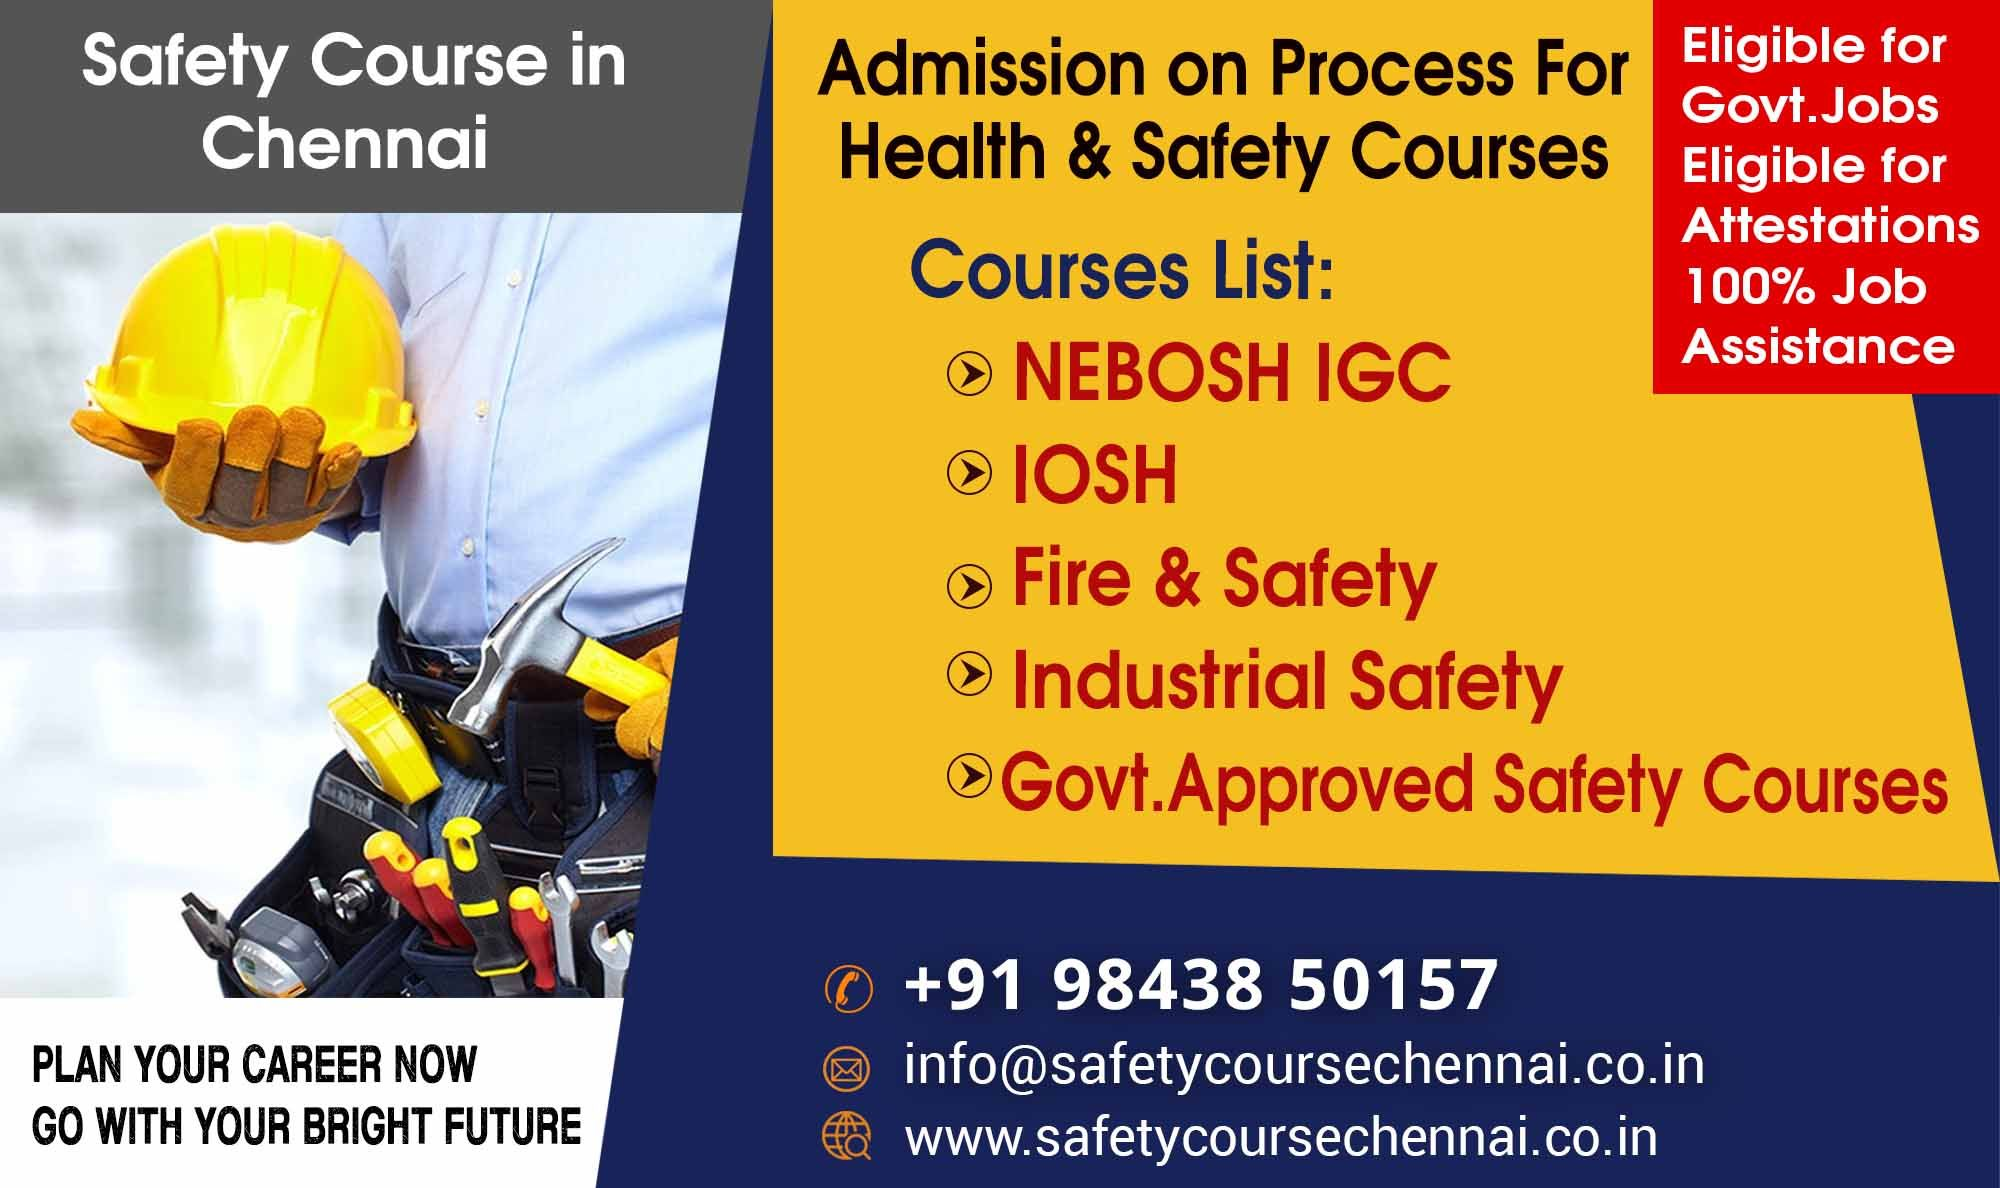 Fire and Safety Course in Chennai (With images) Safety